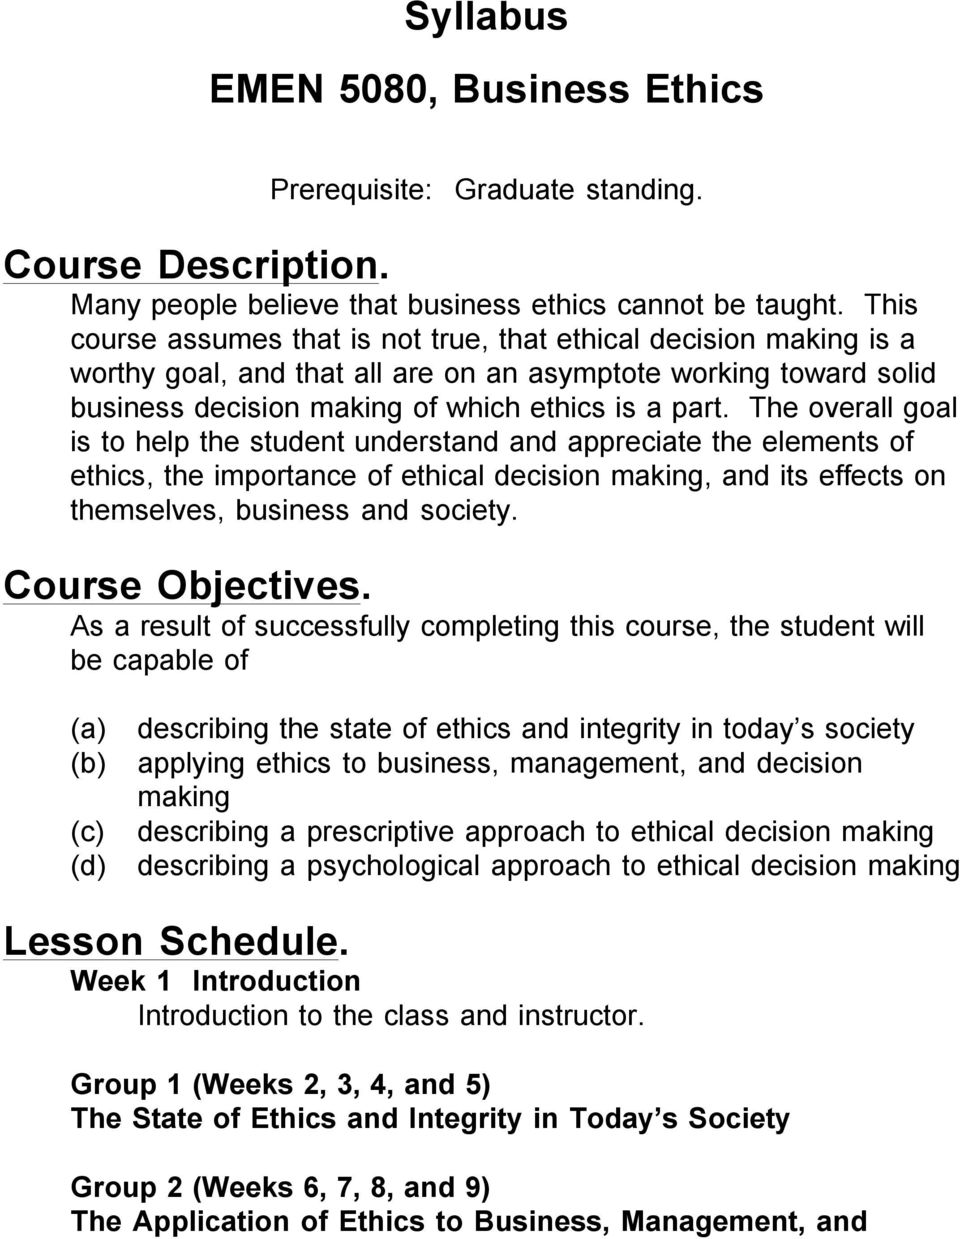 Syllabus Emen 5080 Business Ethics Pdf